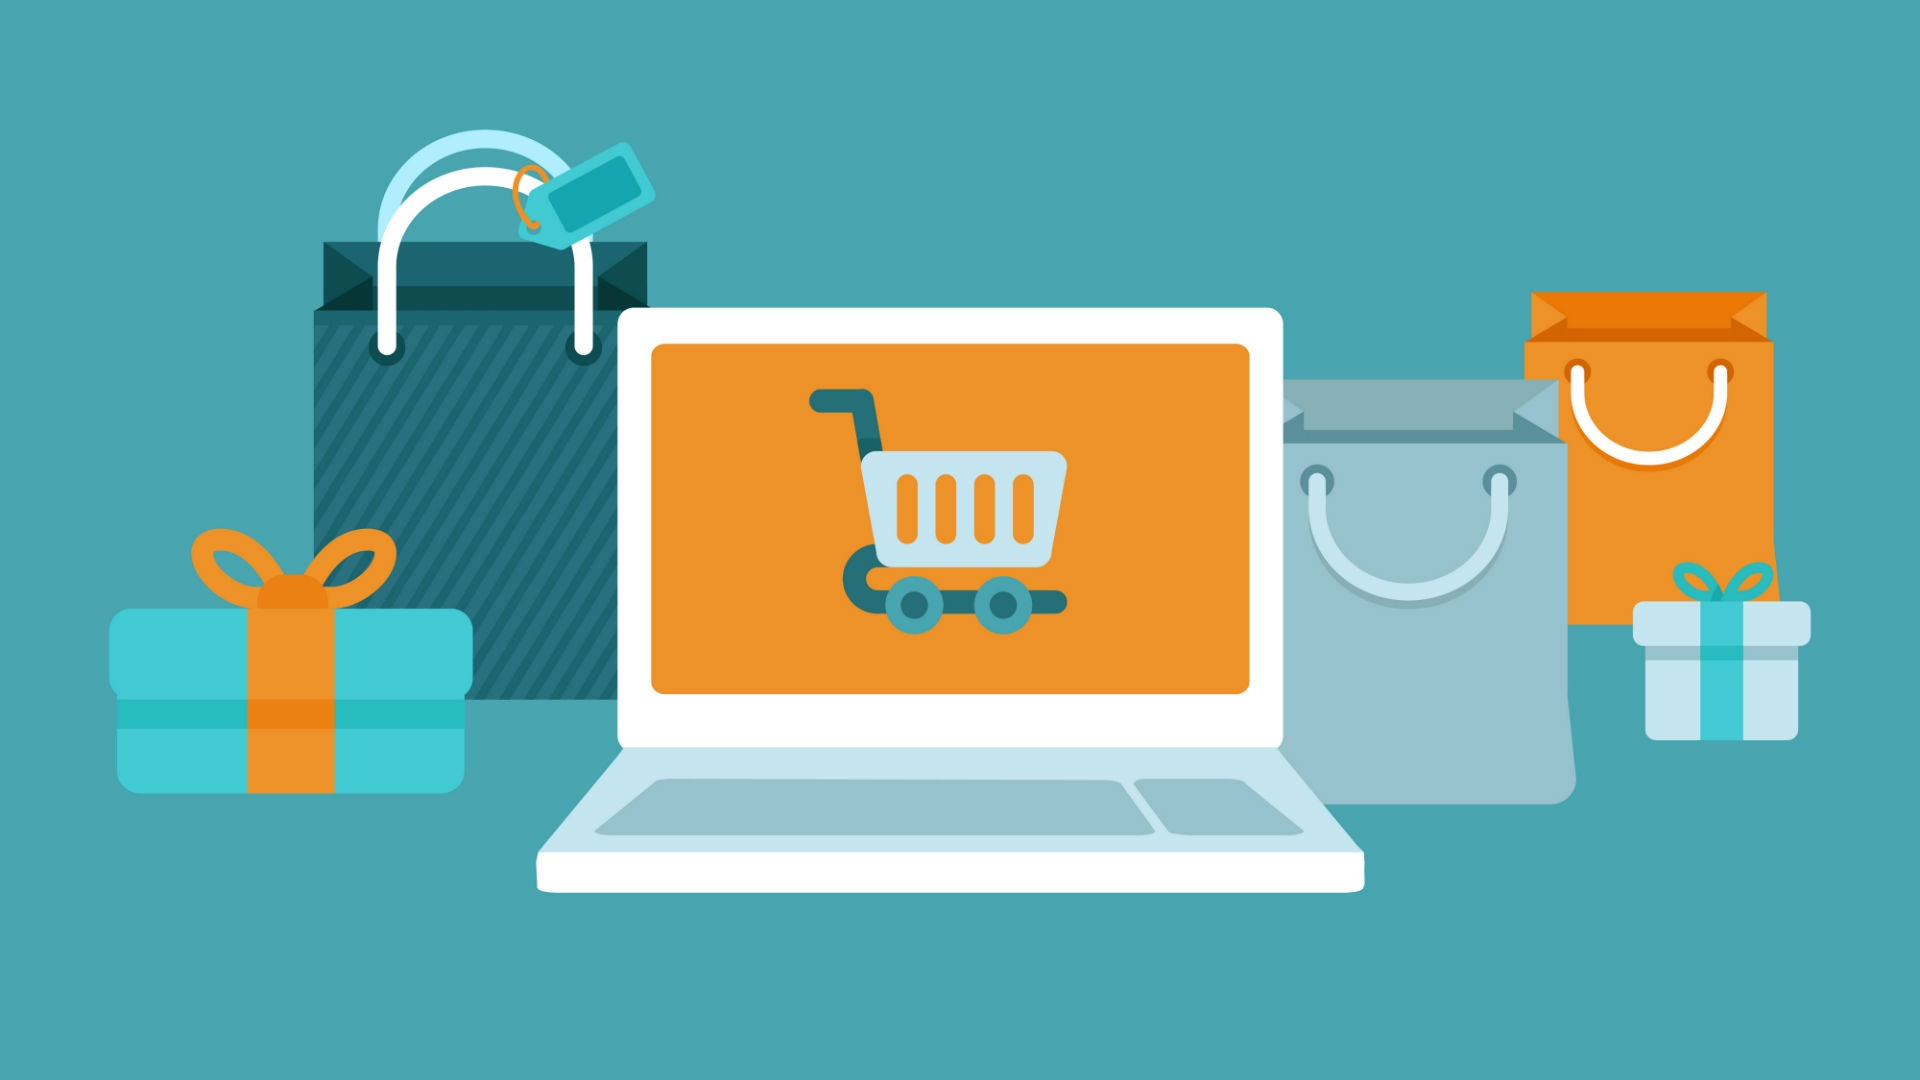 a841018ed31 How to Start Your Own Online Store Business in the Philippines ...